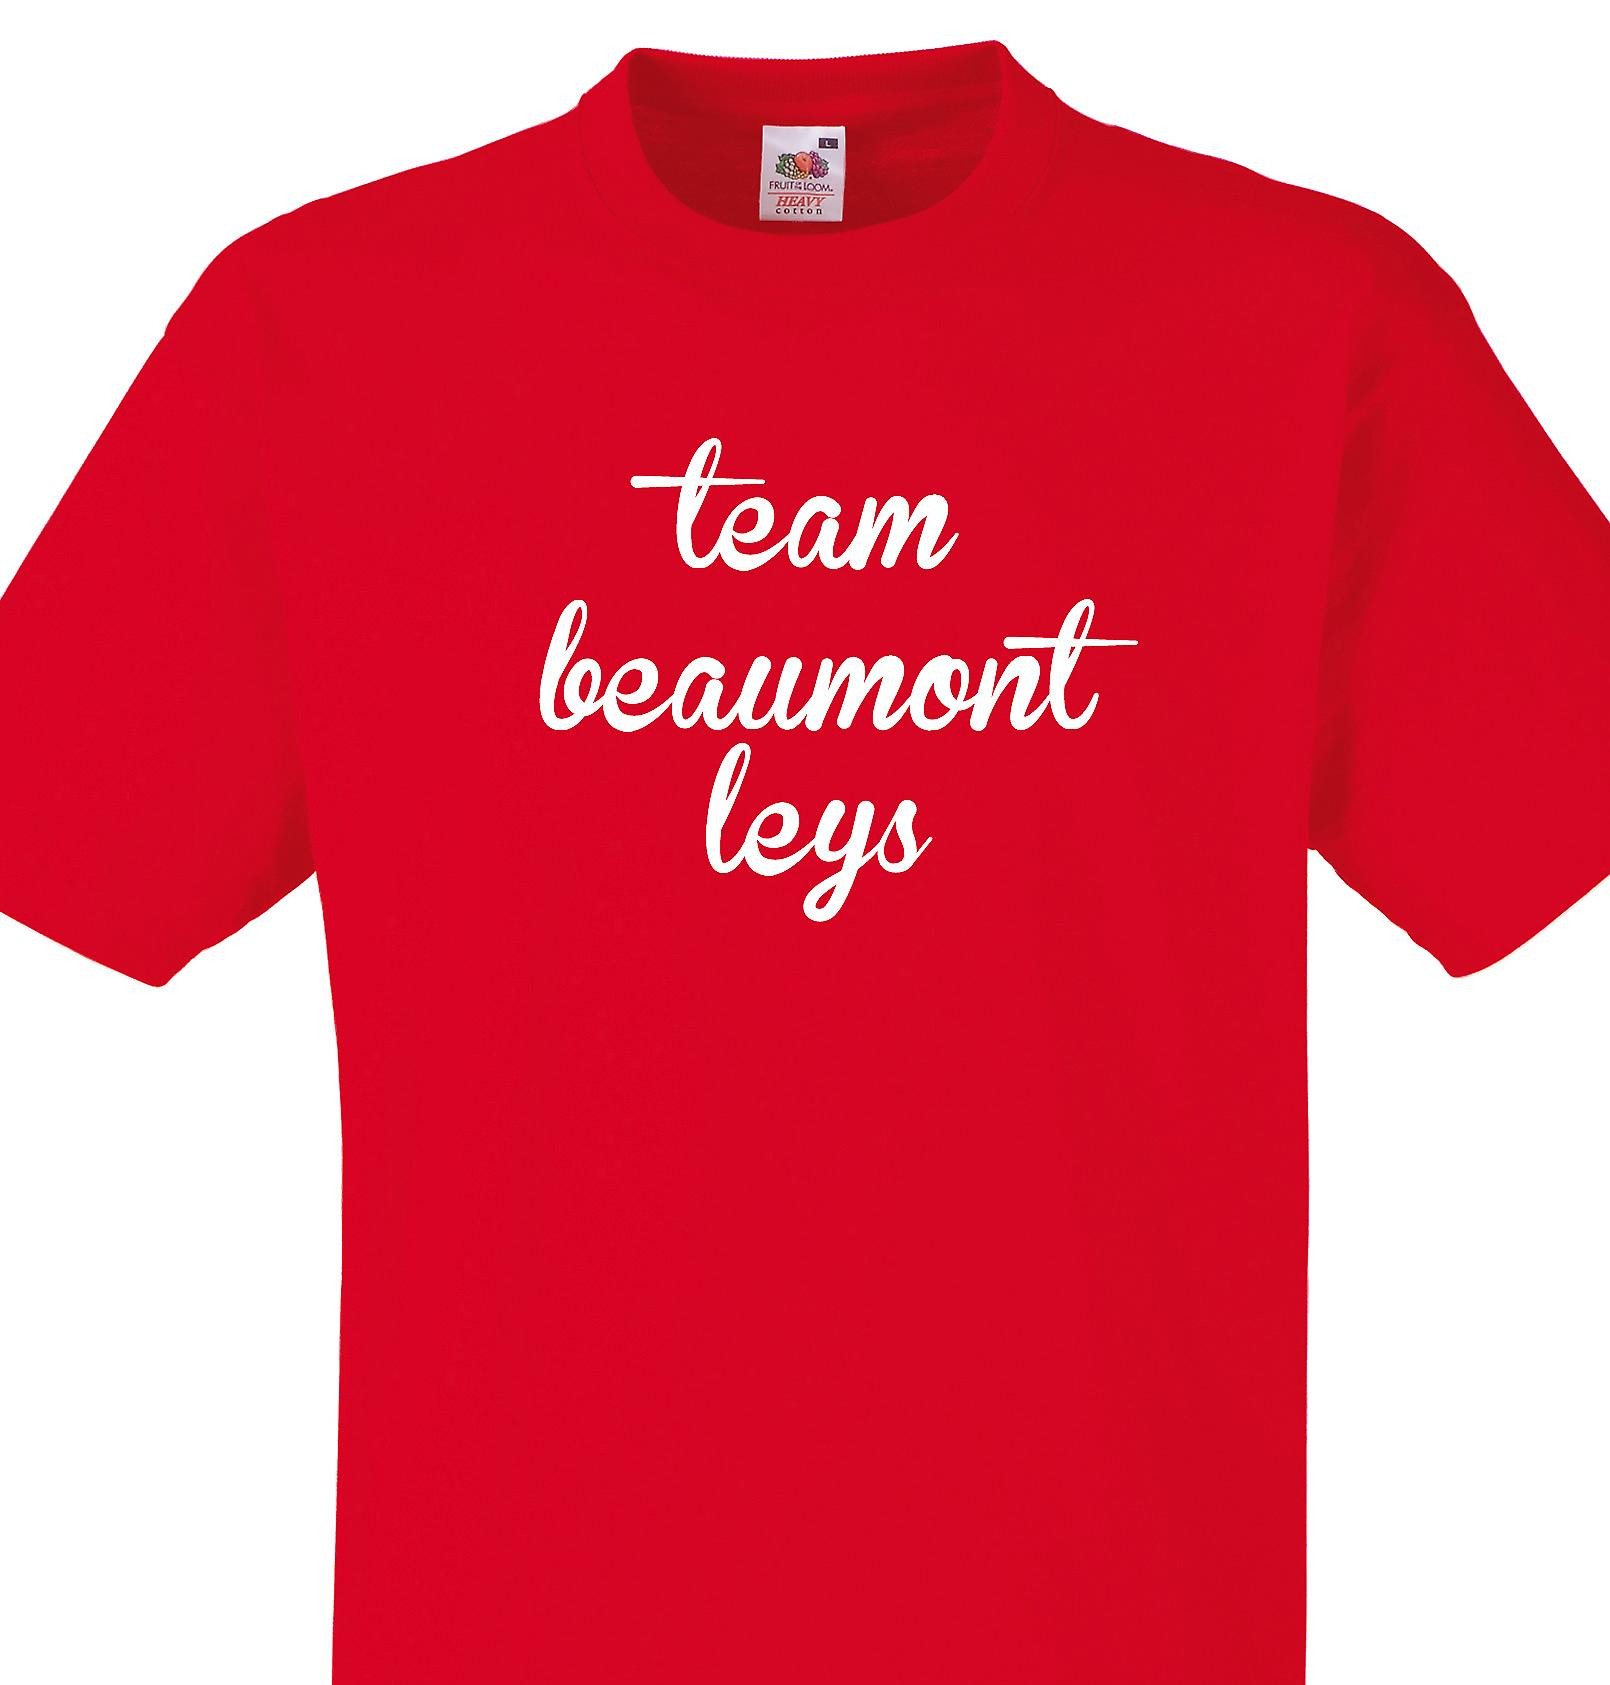 Team Beaumont leys Red T shirt